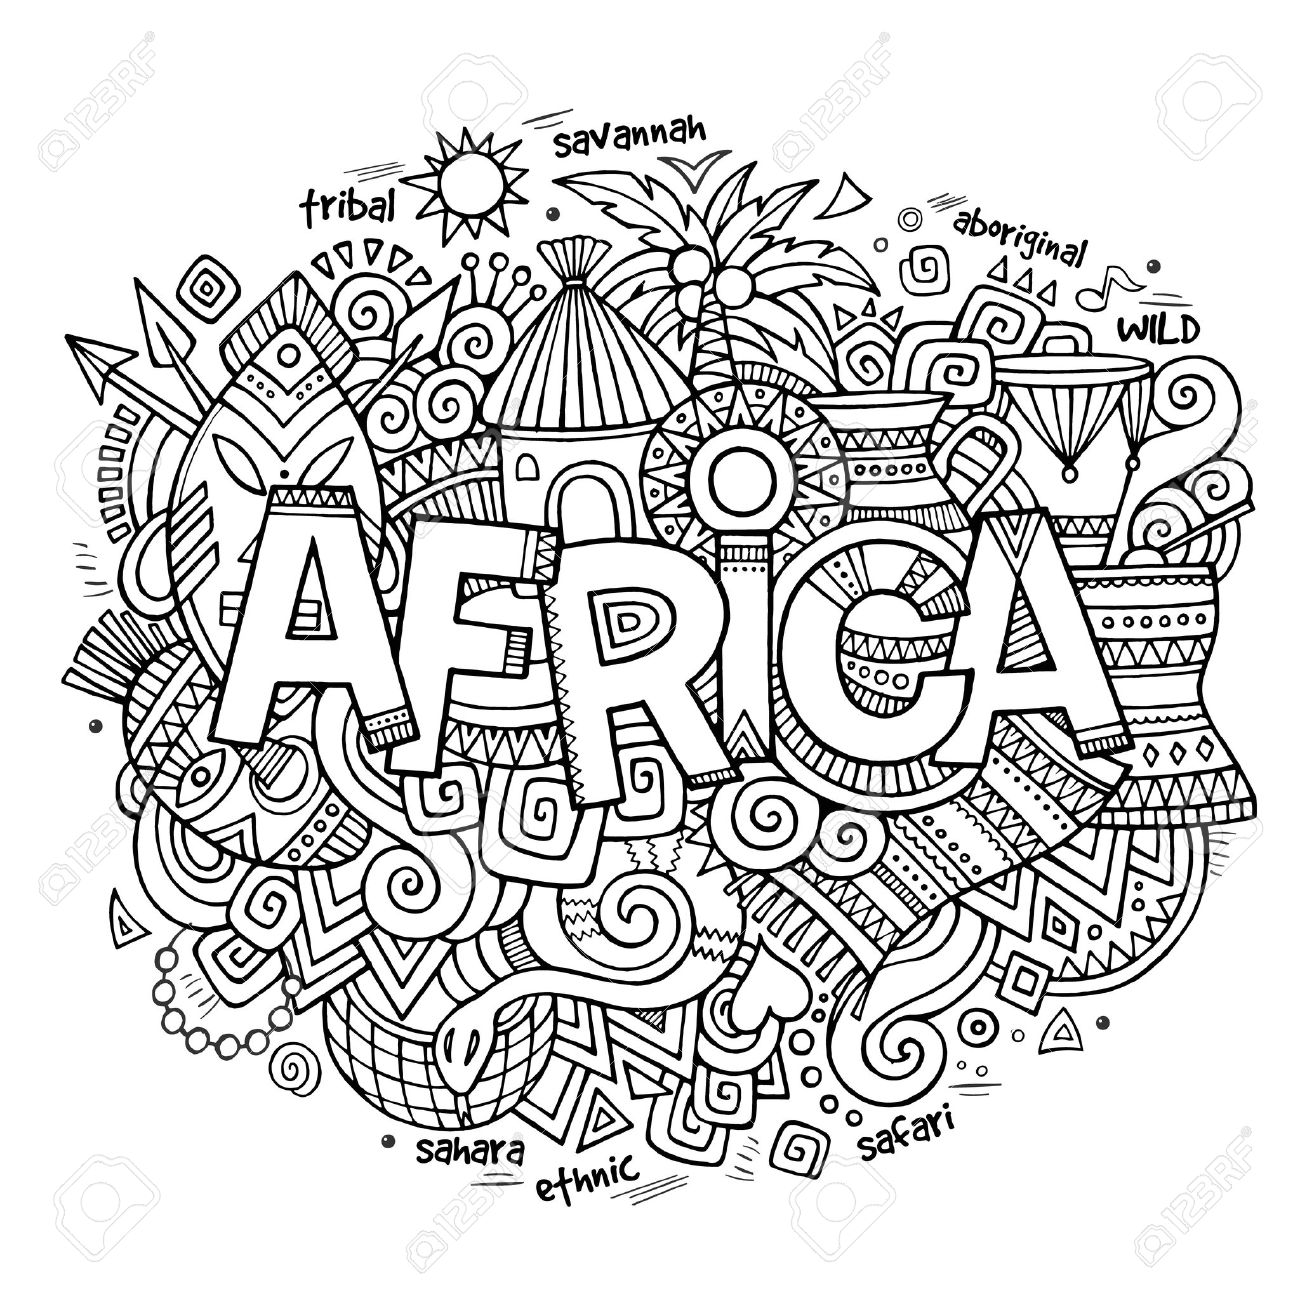 Africa Ethnic Hand Lettering And Doodles Elements And Symbols